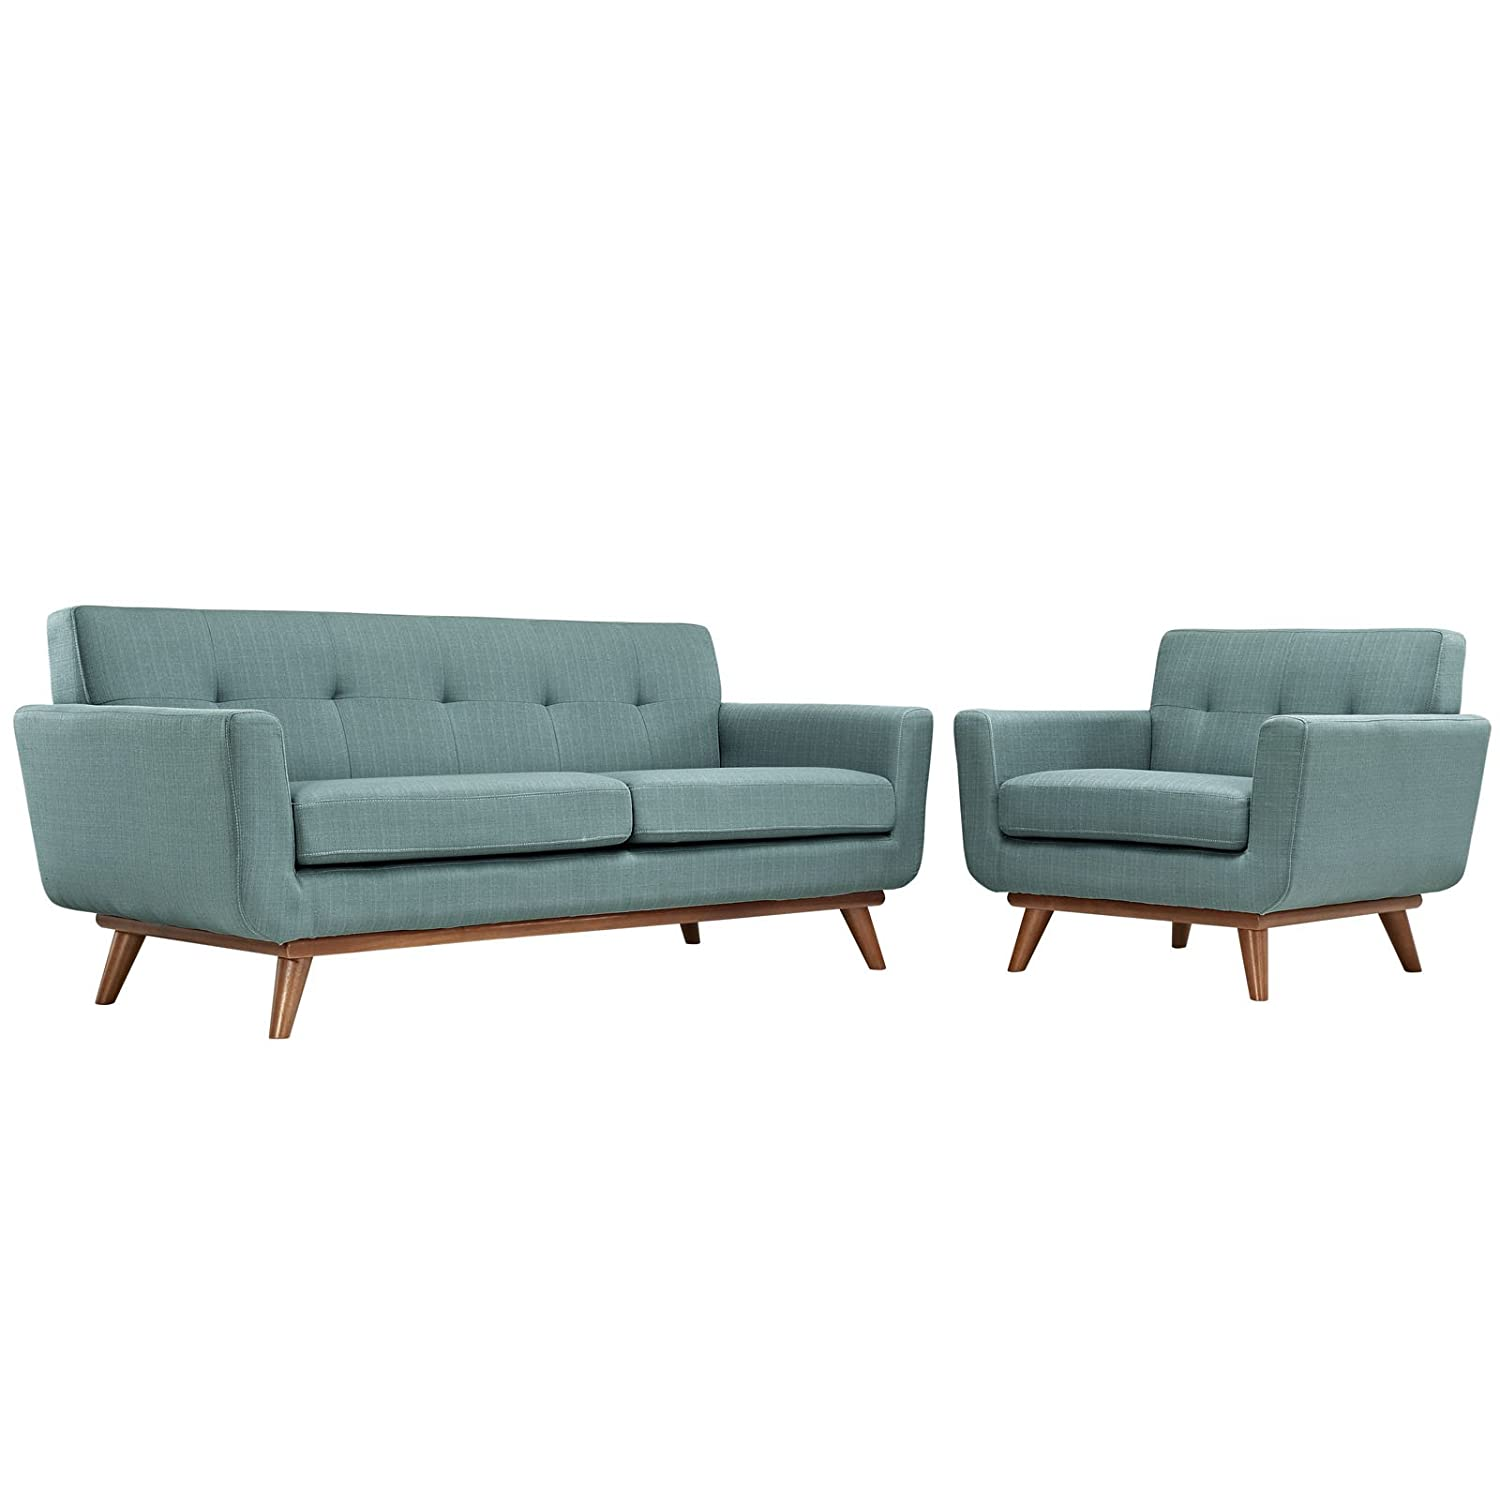 LexMod Engage Armchair and Loveseat Set of 2 in Laguna